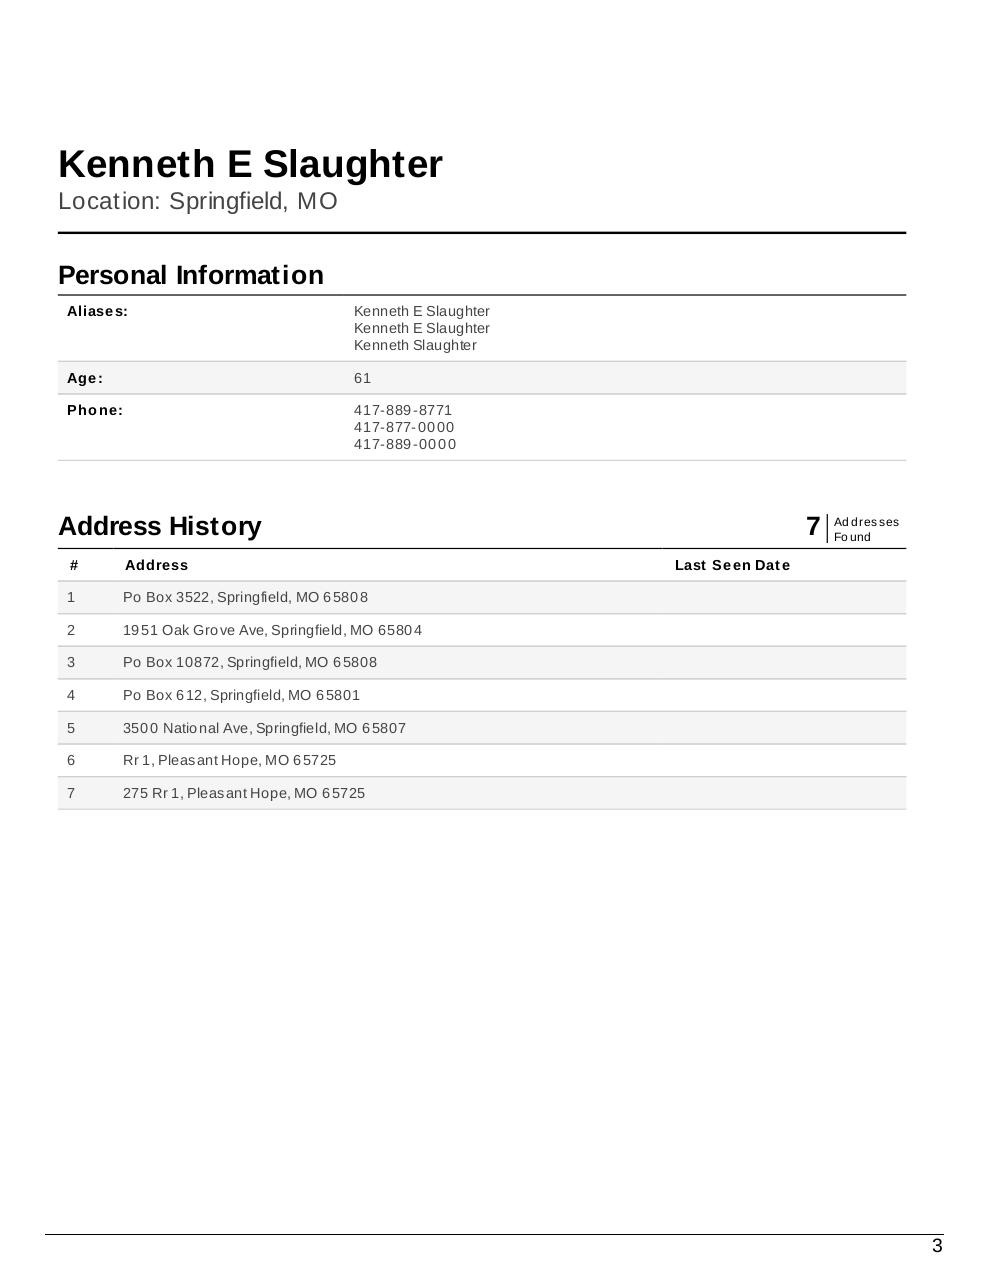 Kenneth_E_Slaughter-bd9f8f0ad3ed256.pdf - page 3/8